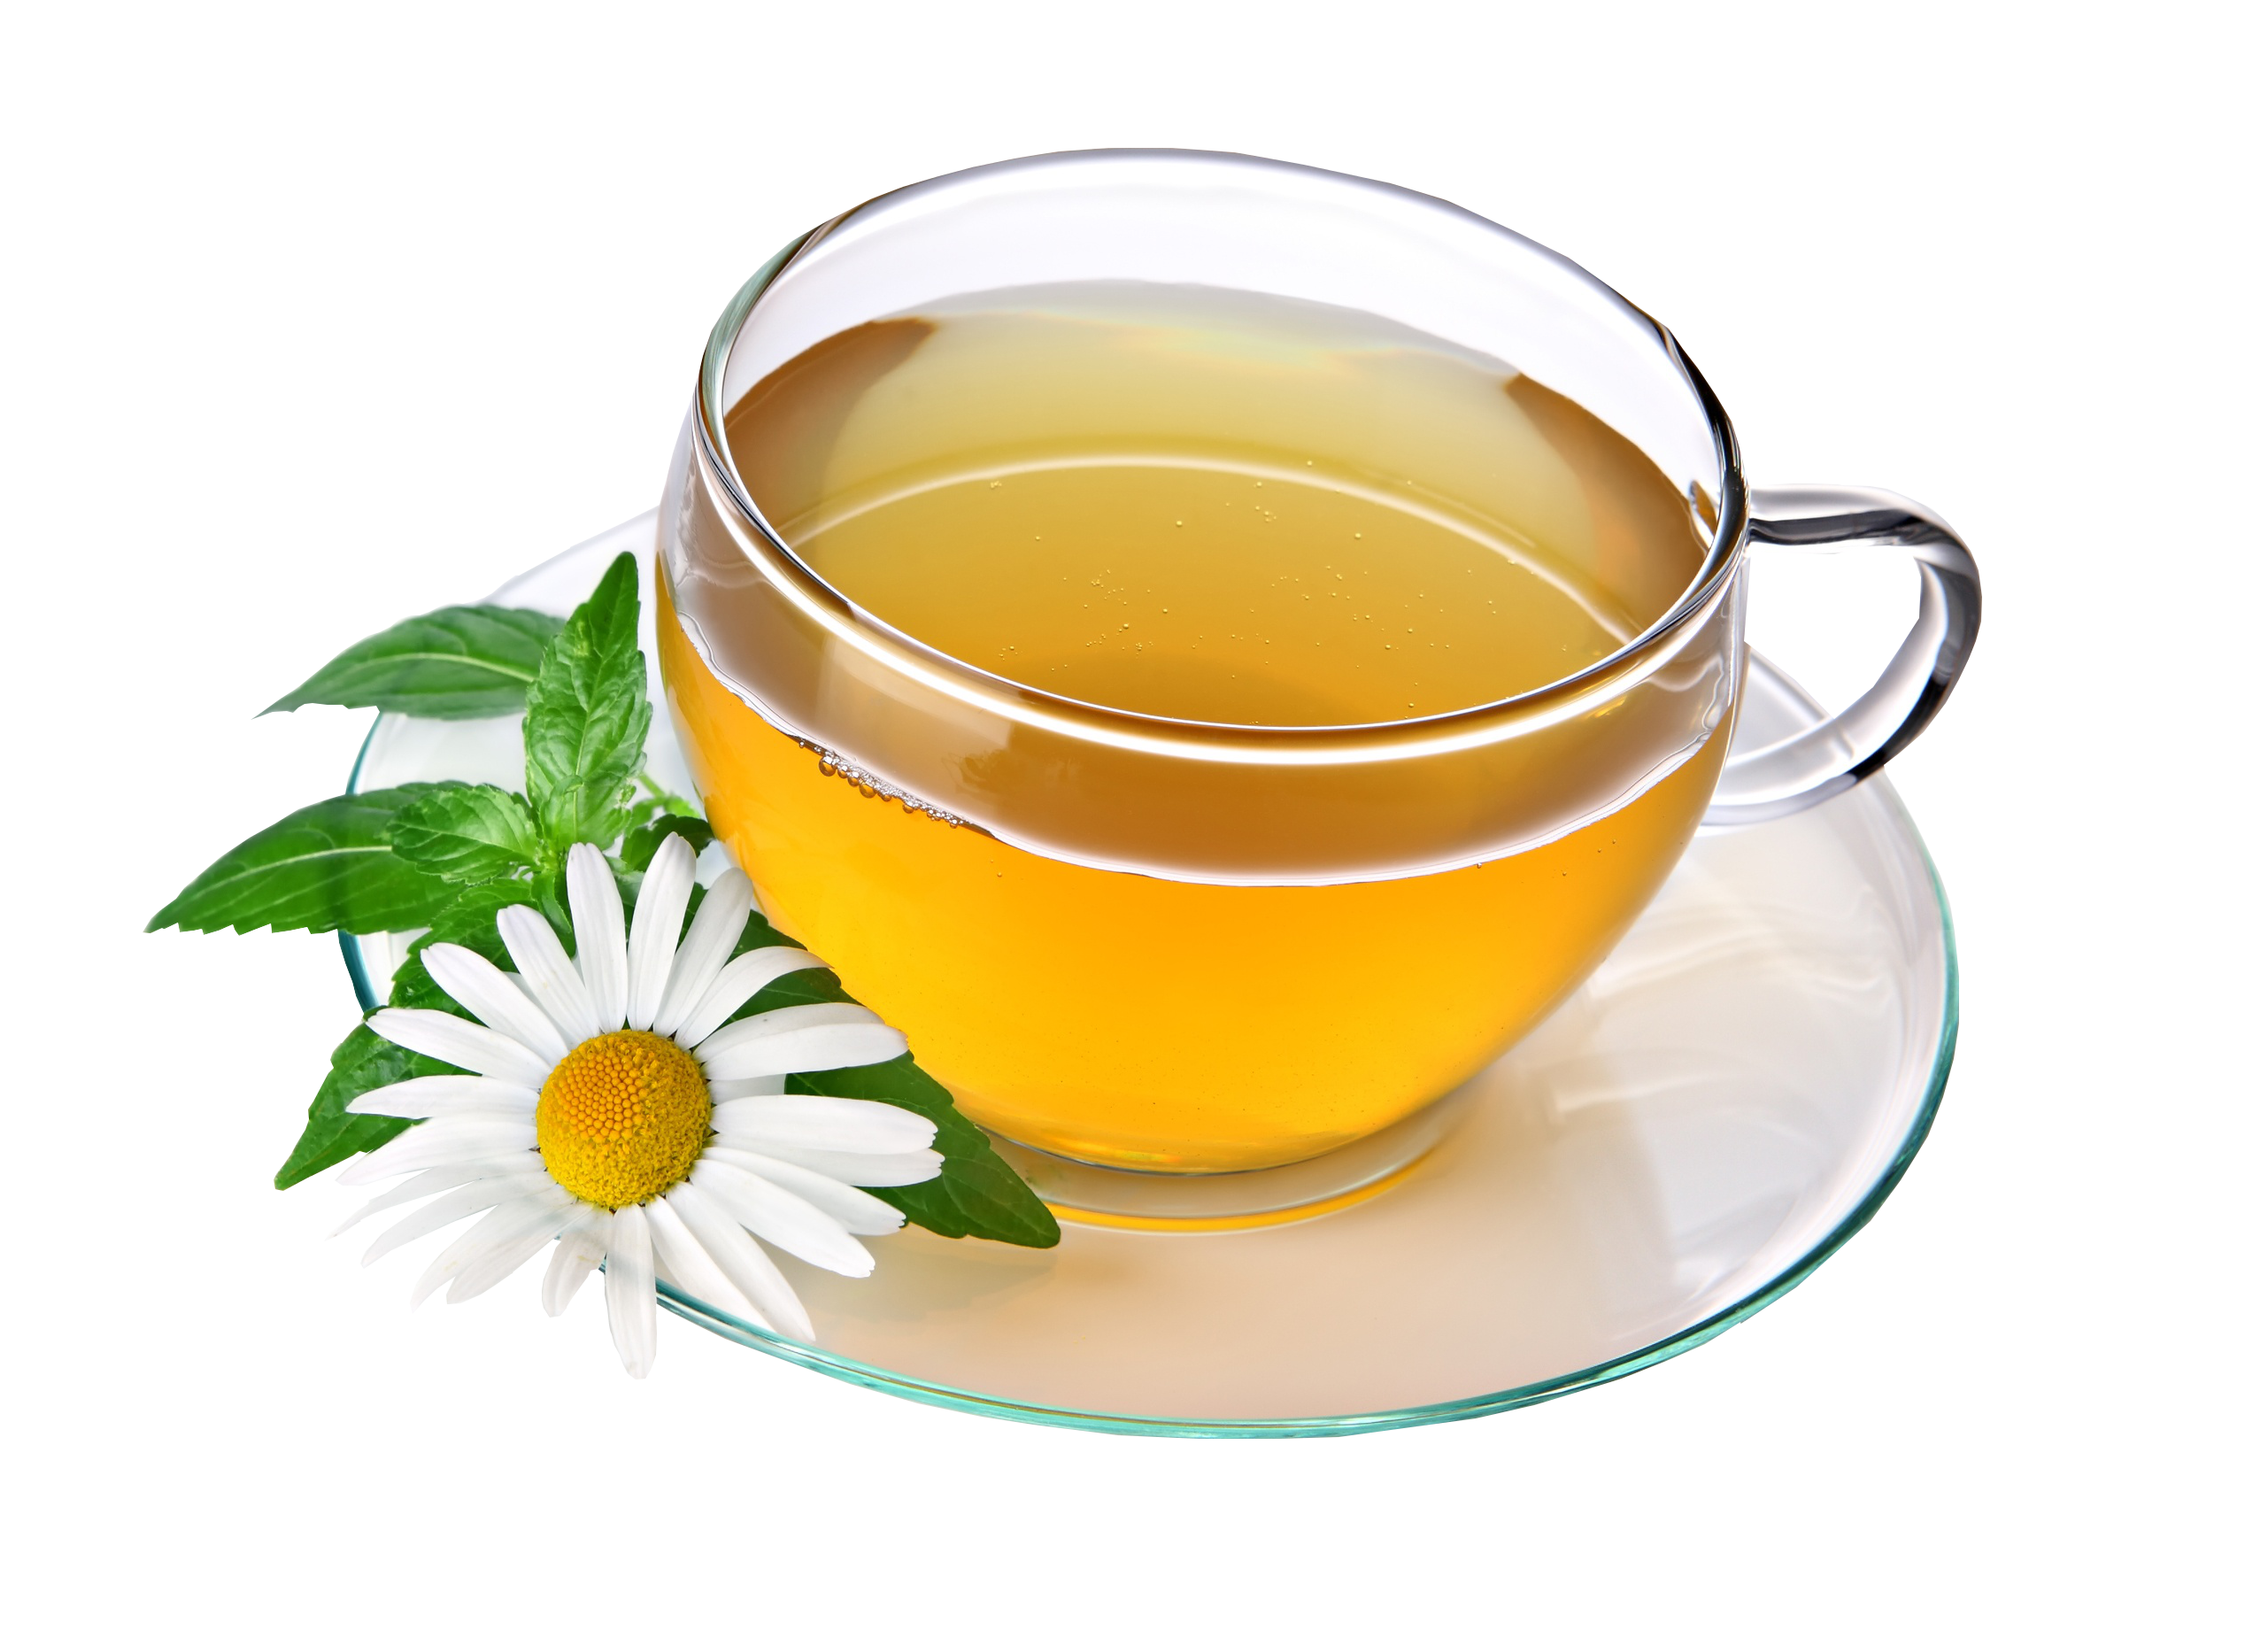 Transparent tea yellow. Png pic mart